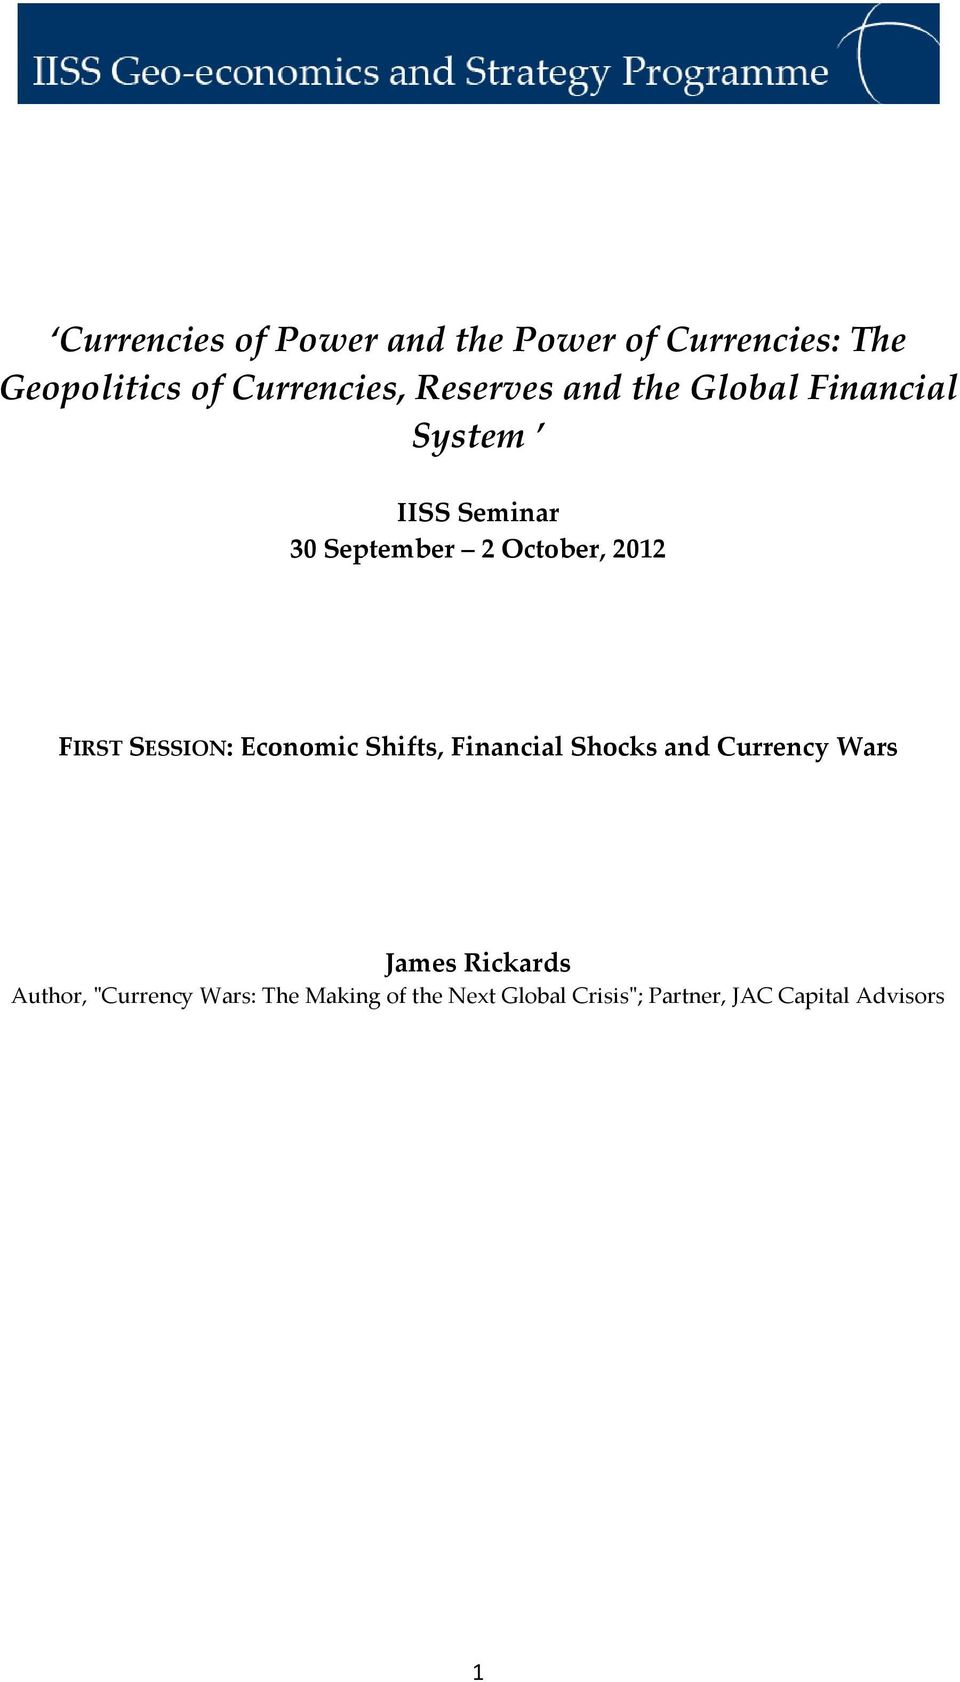 FIRST SESSION: Economic Shifts, Financial Shocks and Currency Wars James Rickards